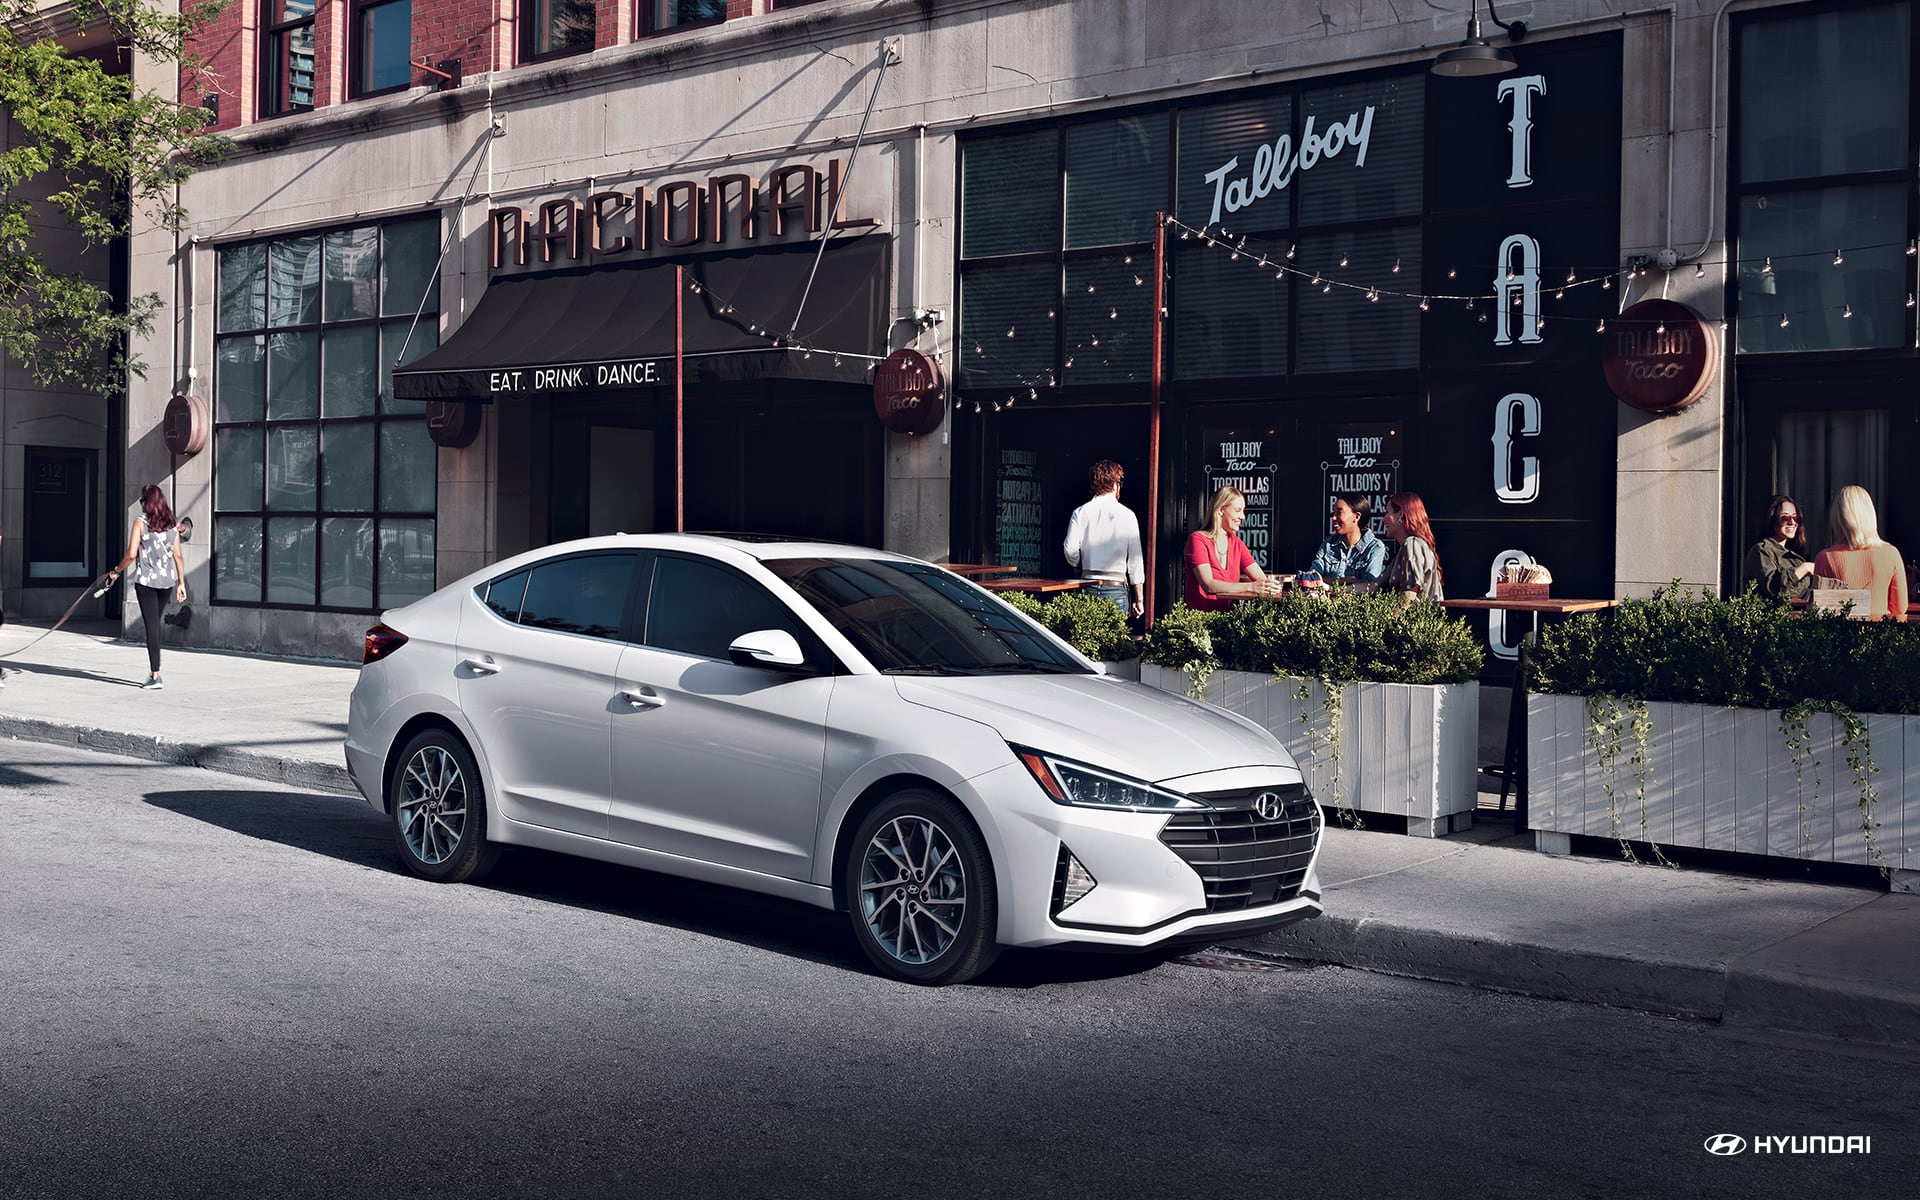 What is the gas mileage of the 2020 Hyundai Elantra?